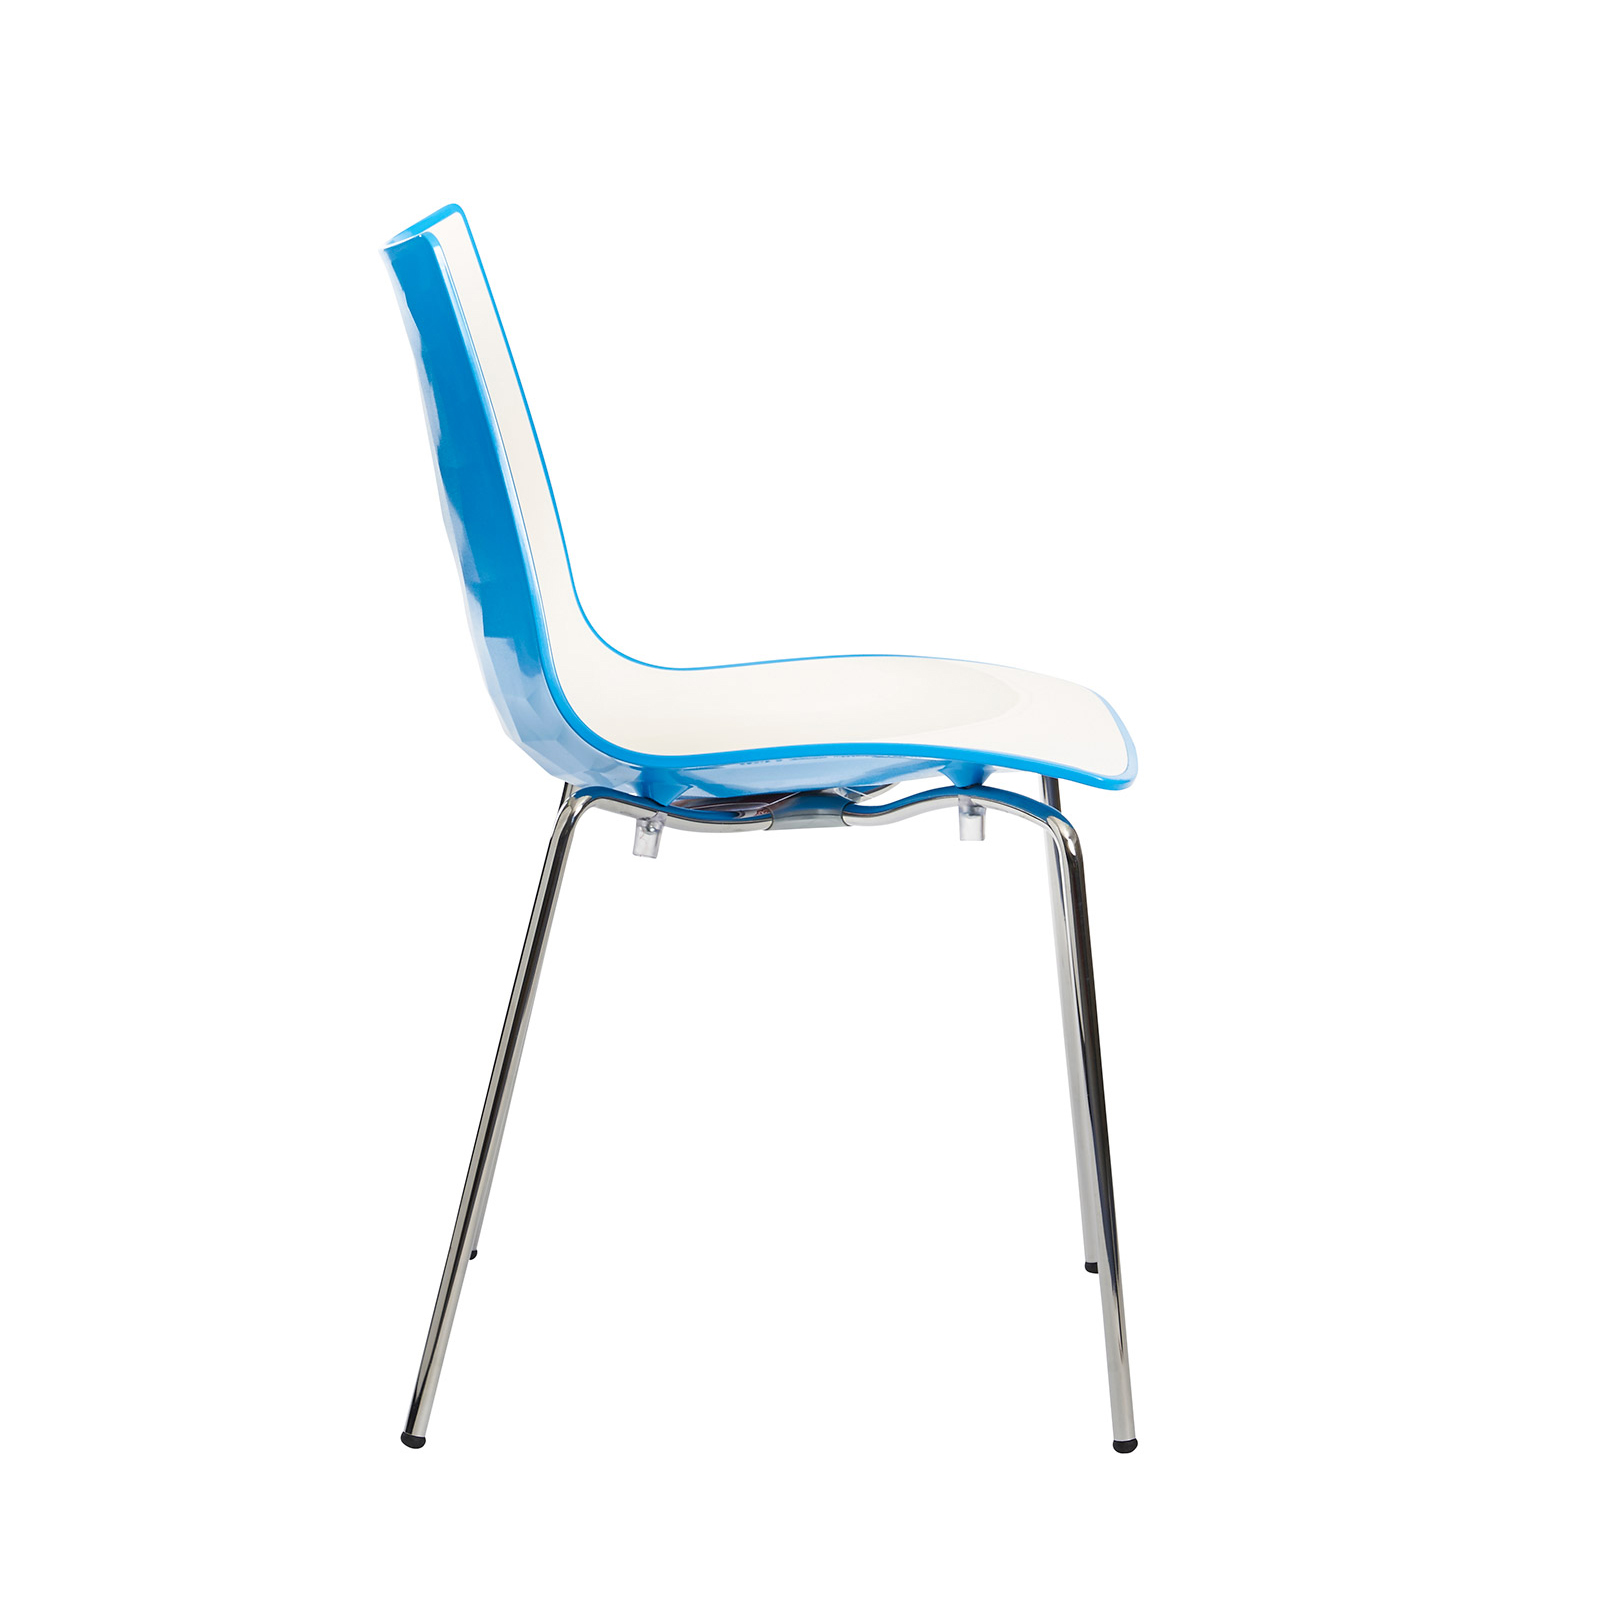 Gecko shell dining stacking chair with chrome legs - blue